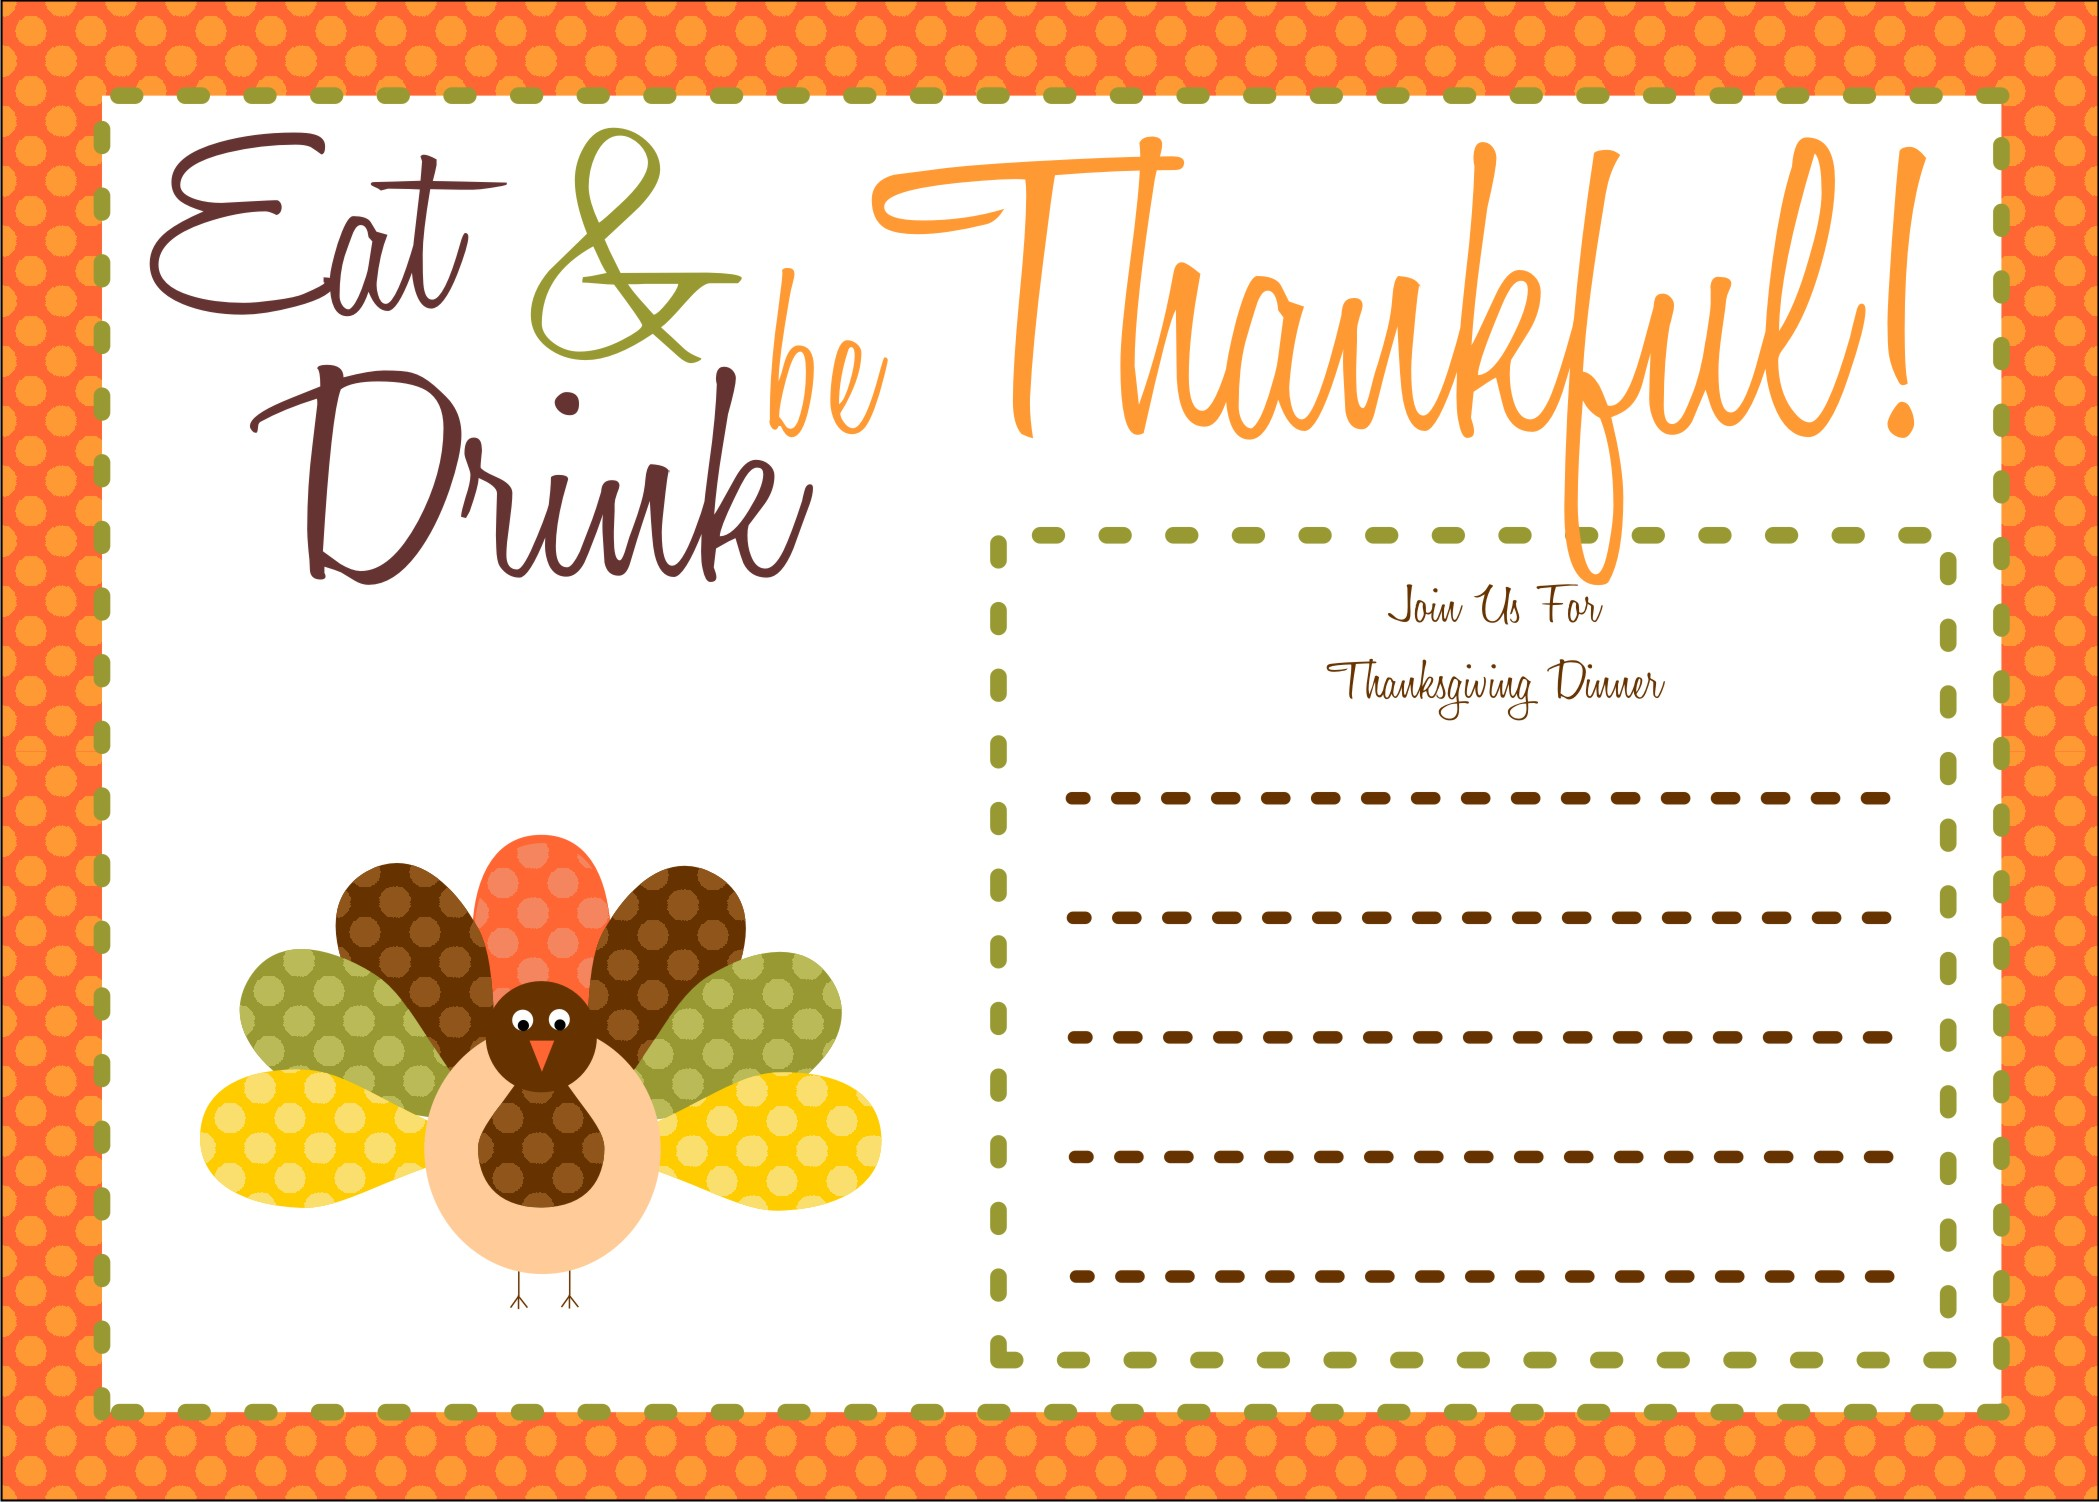 Free Thanksgiving Invitation Templates – Dinner Invitation Templates Free